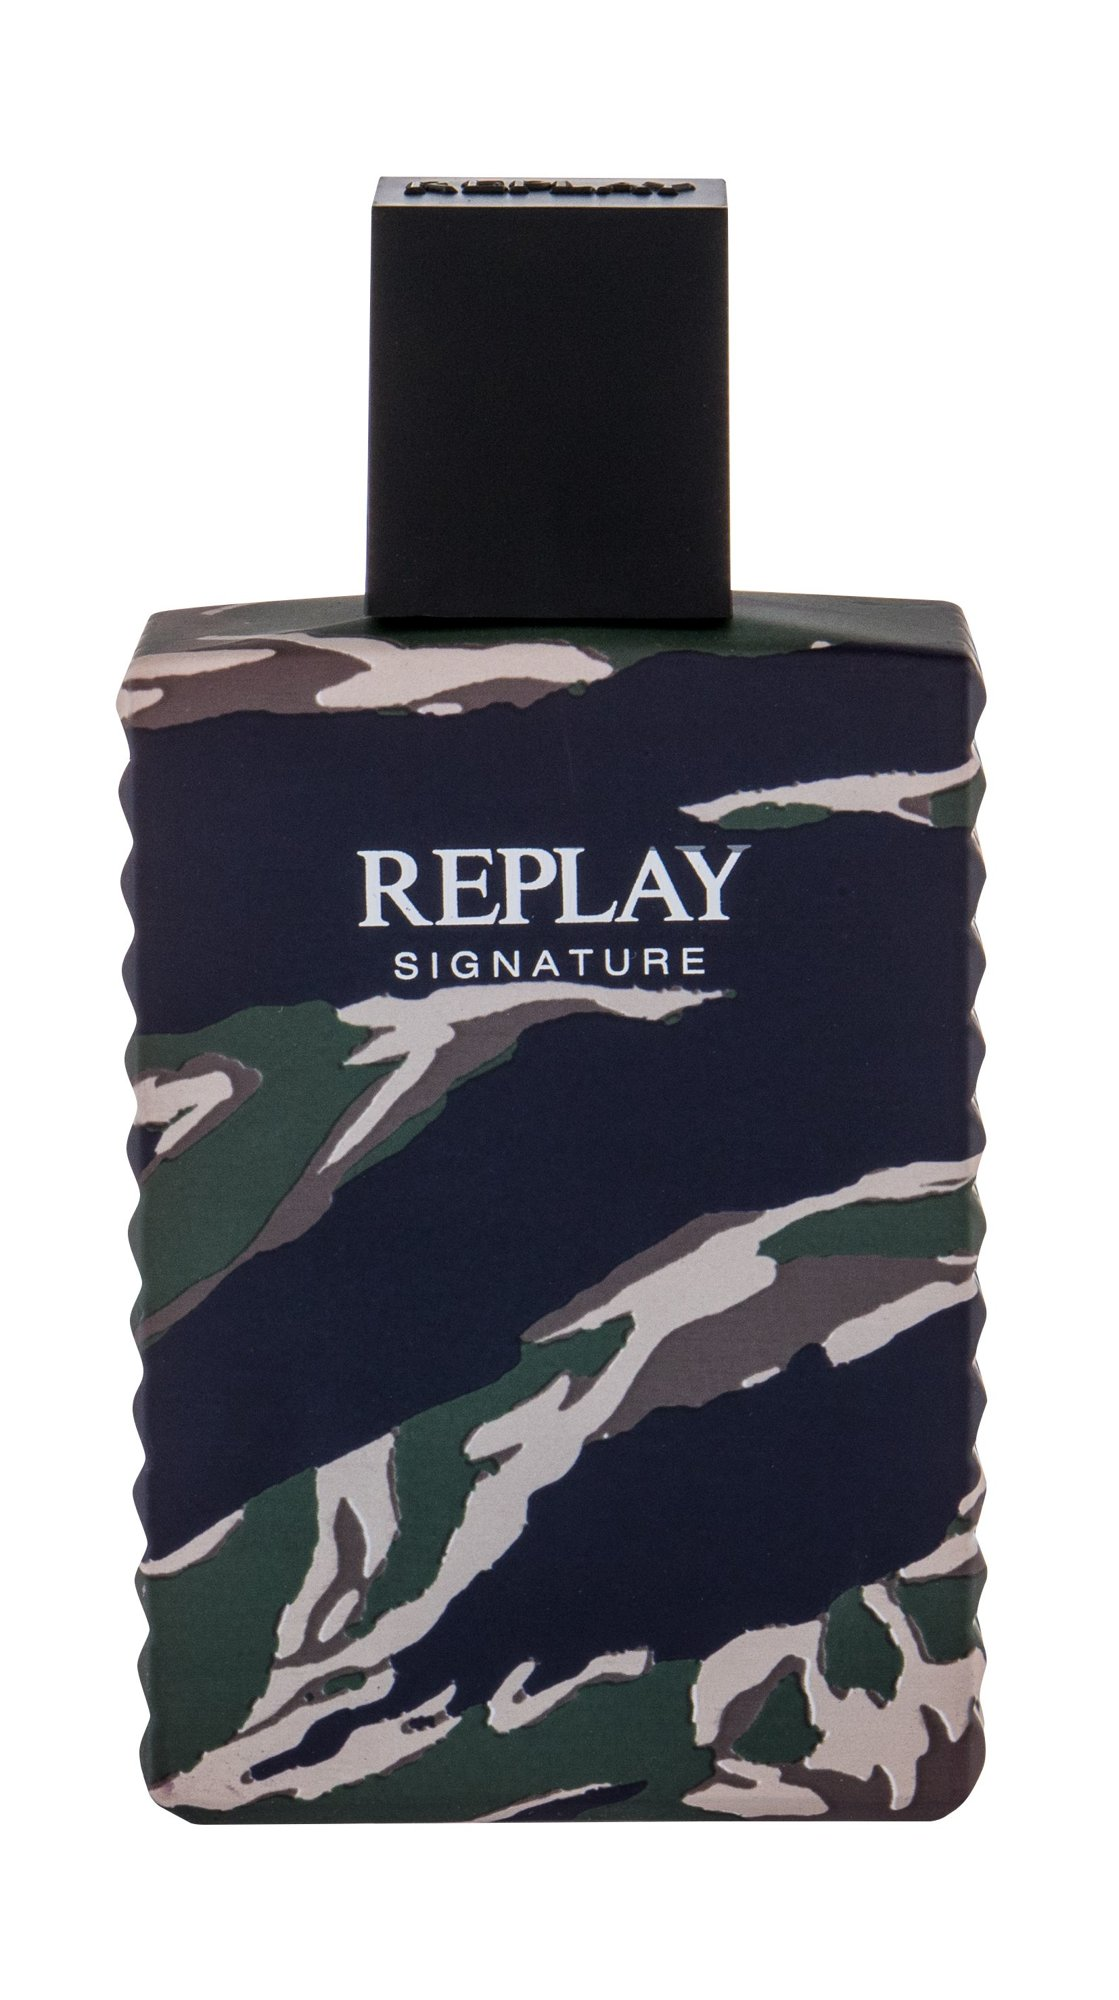 Replay Signature Eau de Toilette 100ml